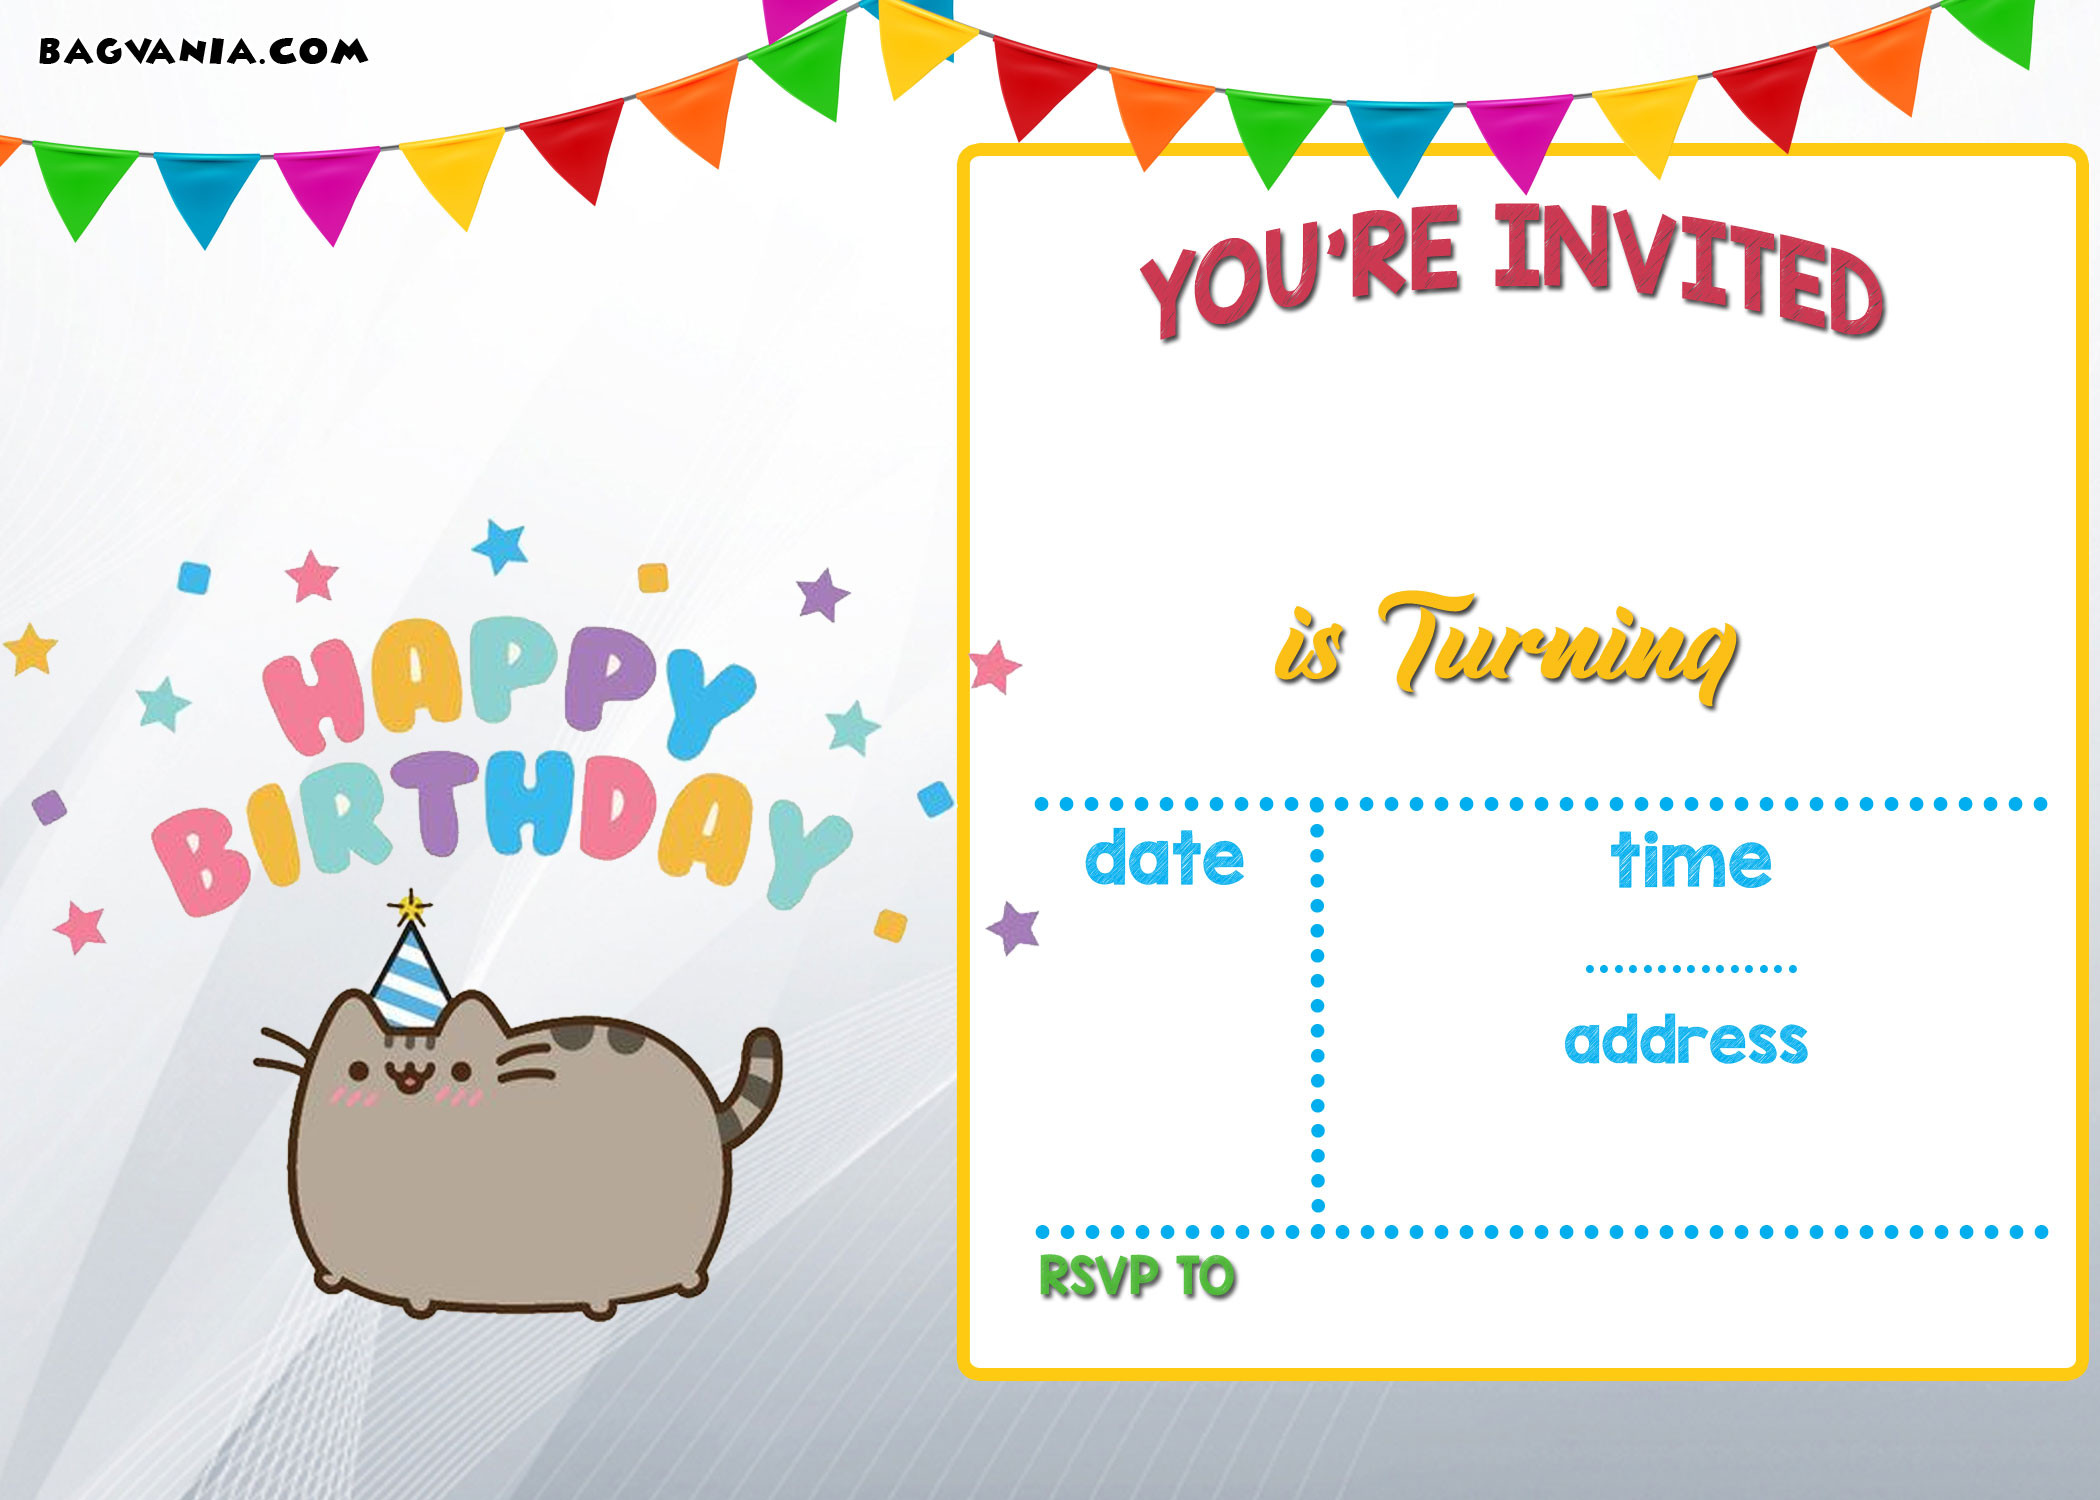 Birthday Party Invitations For Kids  Free Printable Kids Birthday Invitations – Bagvania FREE